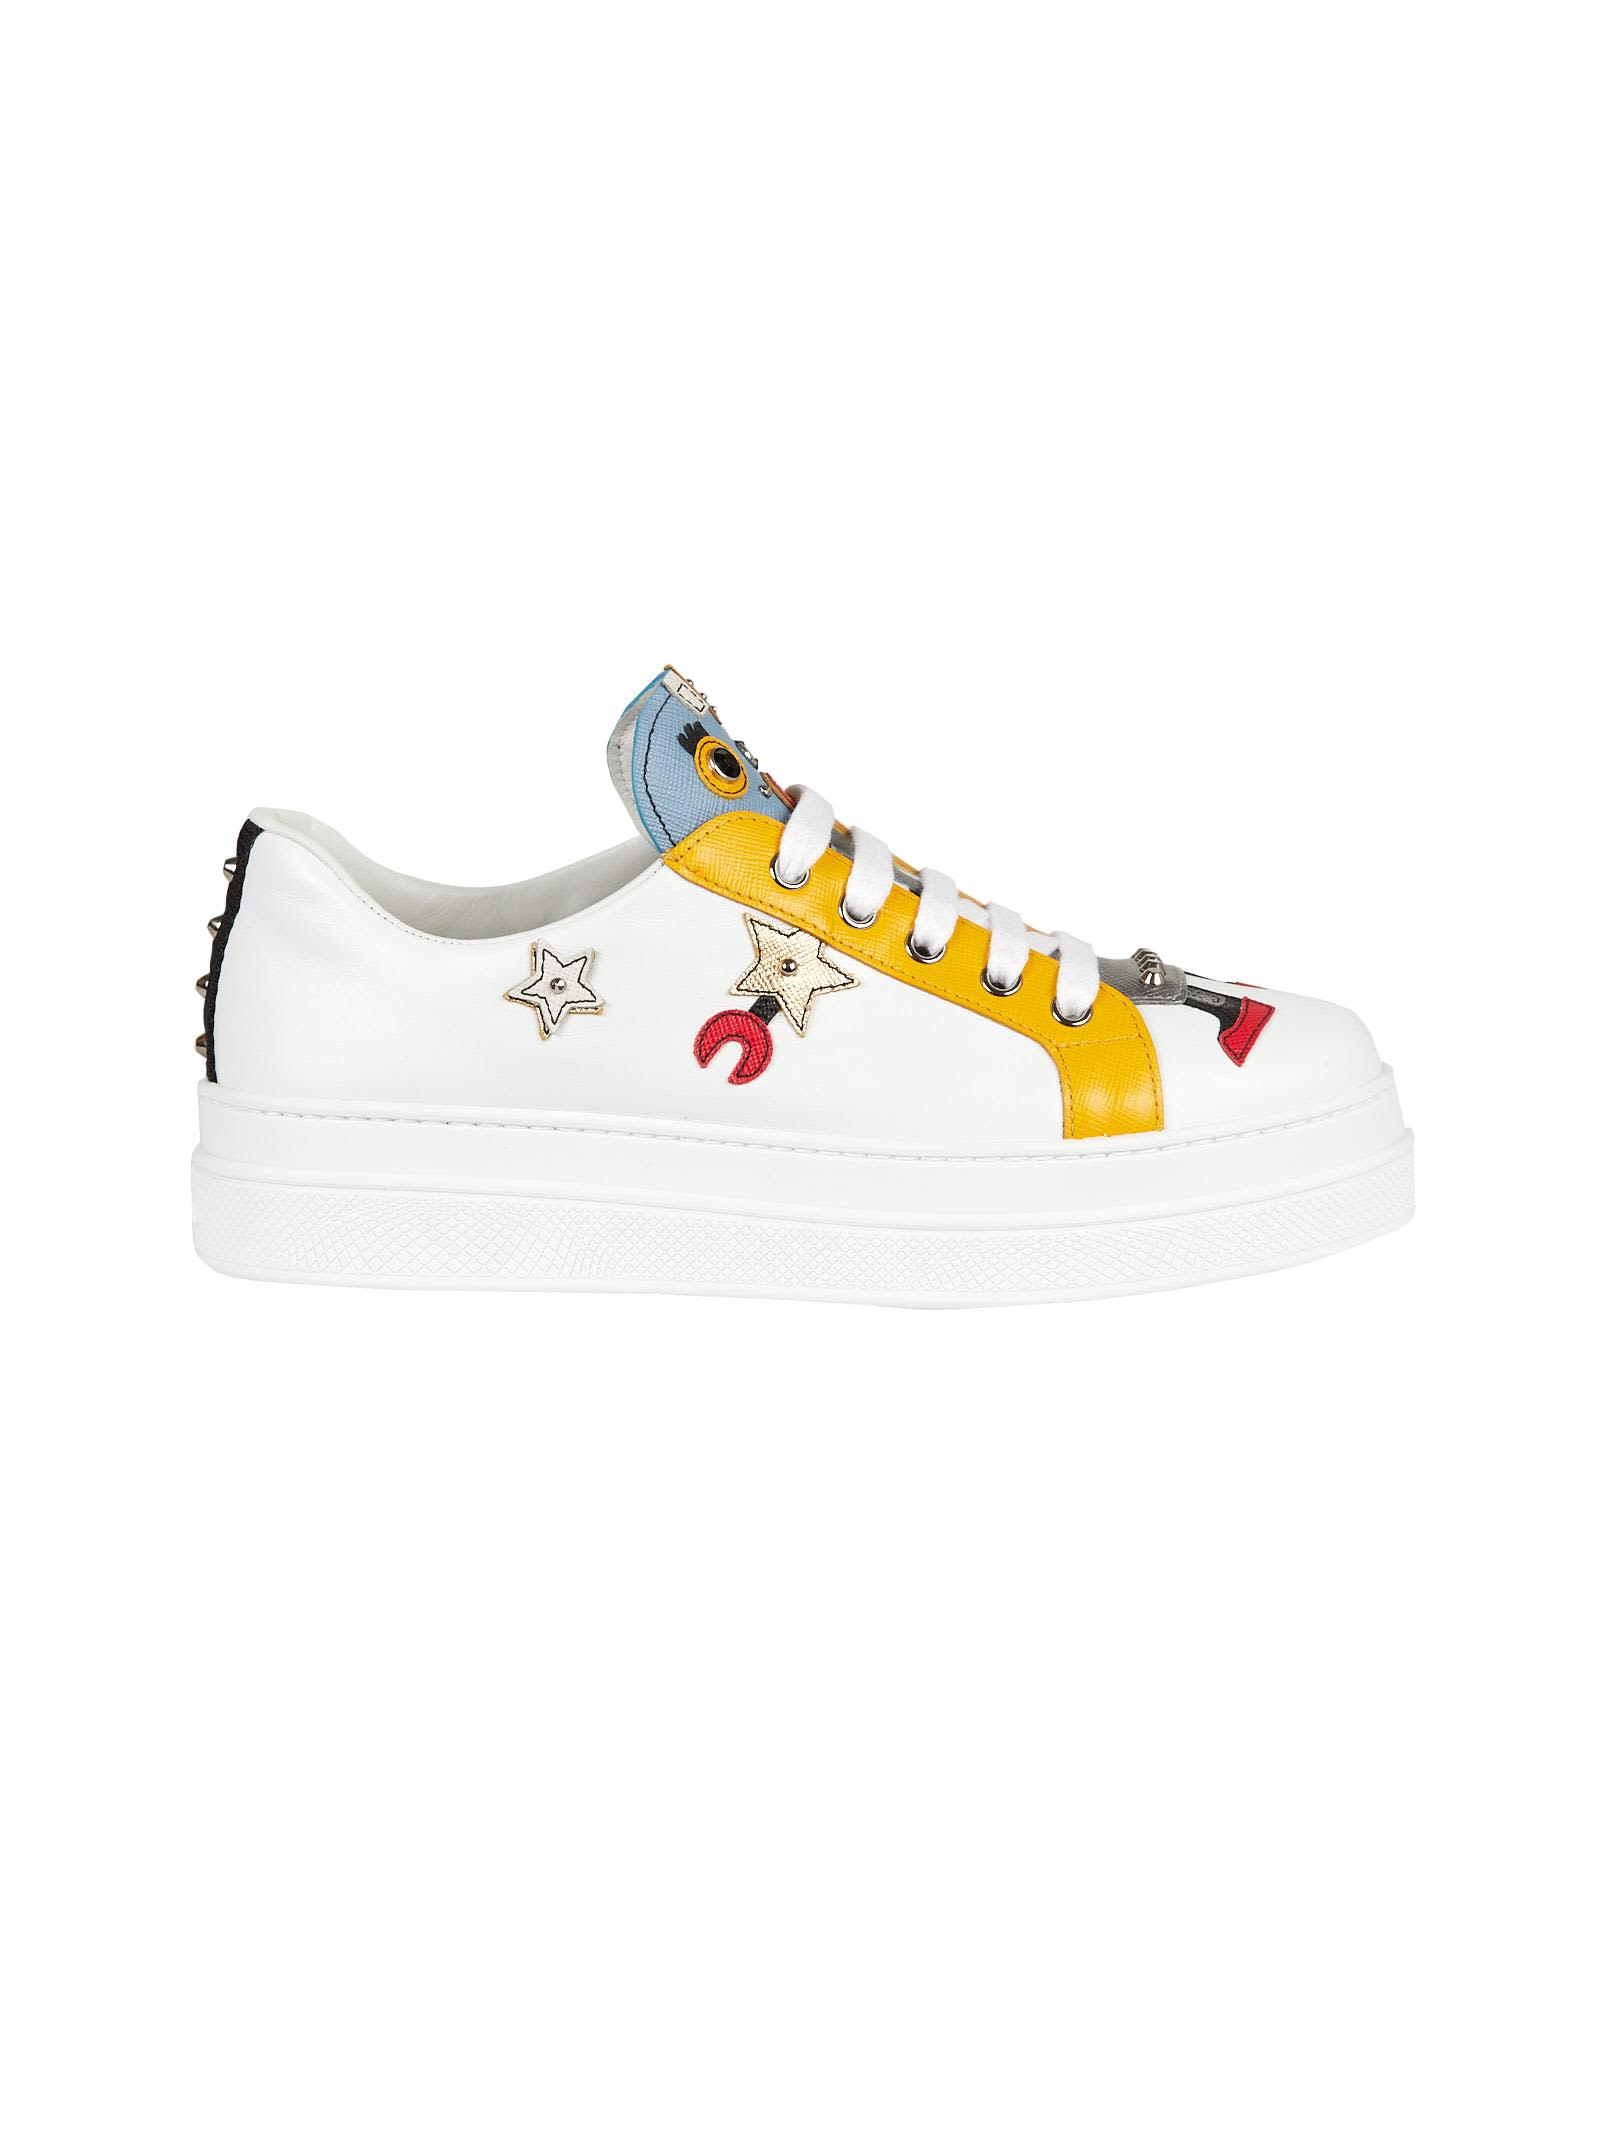 platform soled sneakers - Multicolour Prada Cheap Sale Prices Outlet High Quality Sale Online Free Shipping High Quality BA4xzXkT